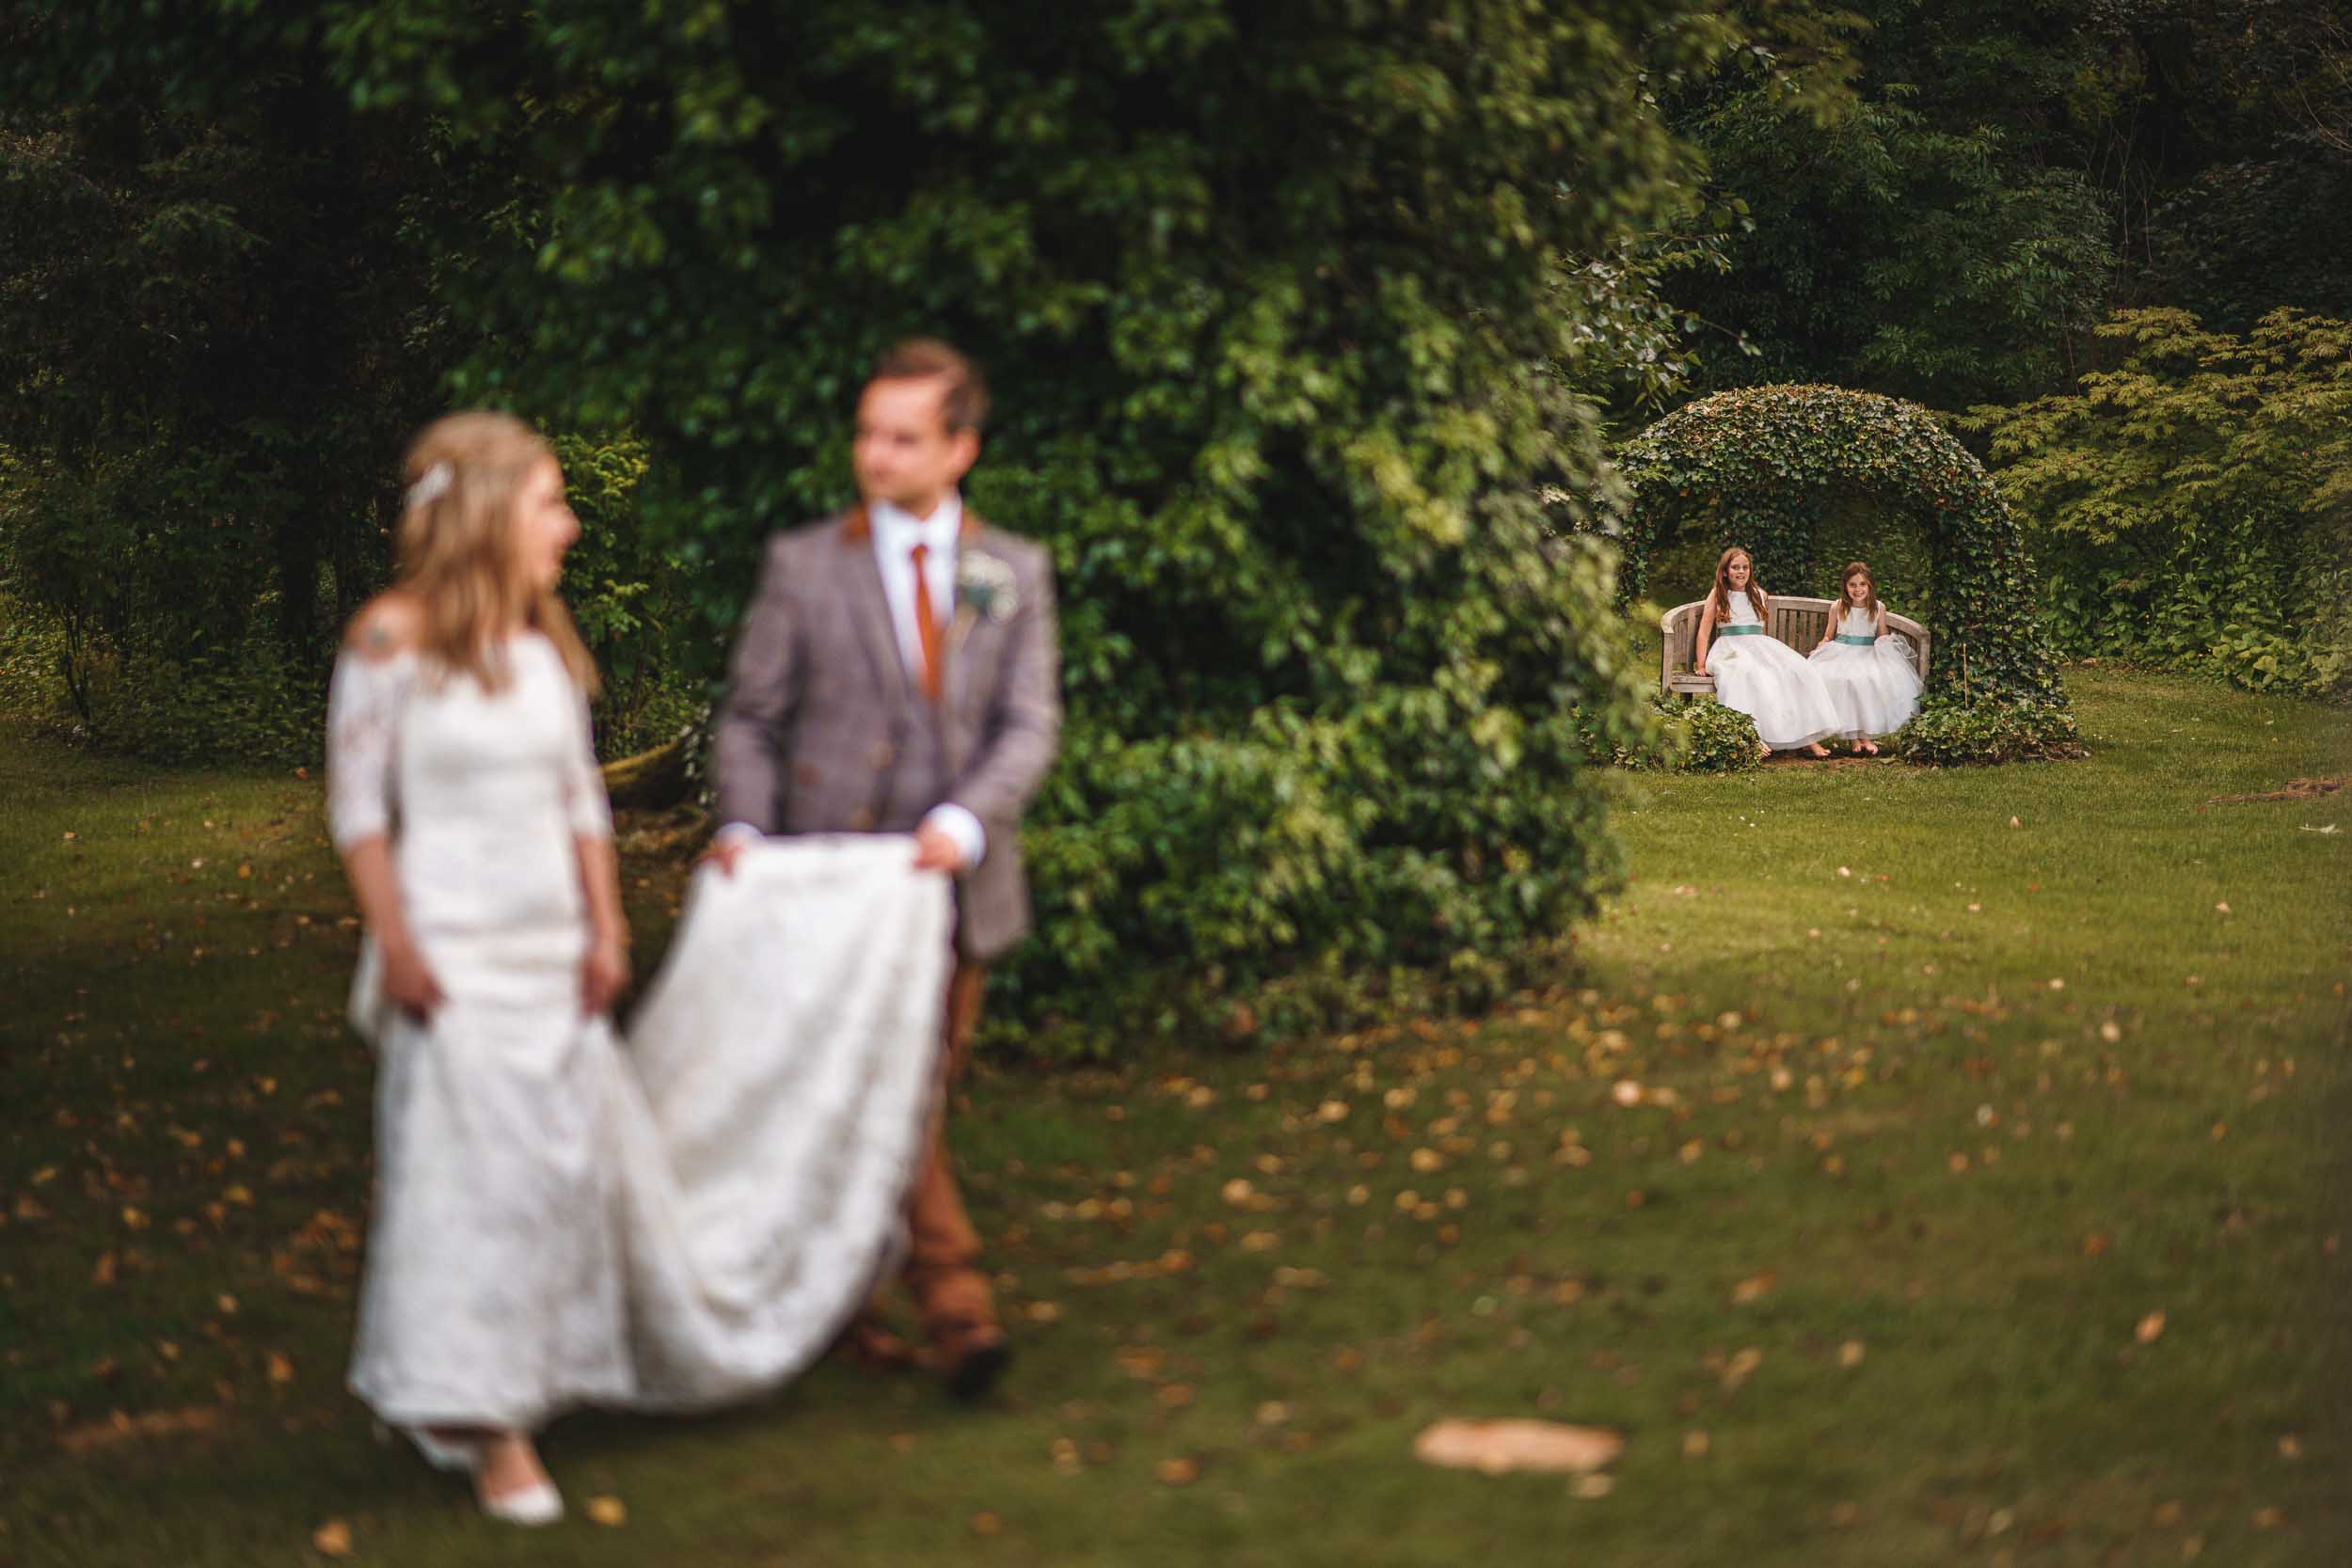 Cripps Barn Wedding Photography, Cripps Barn Wedding, Cotswolds Wedding photography, Cripps Barn, wedding photographers at Cripps Barn